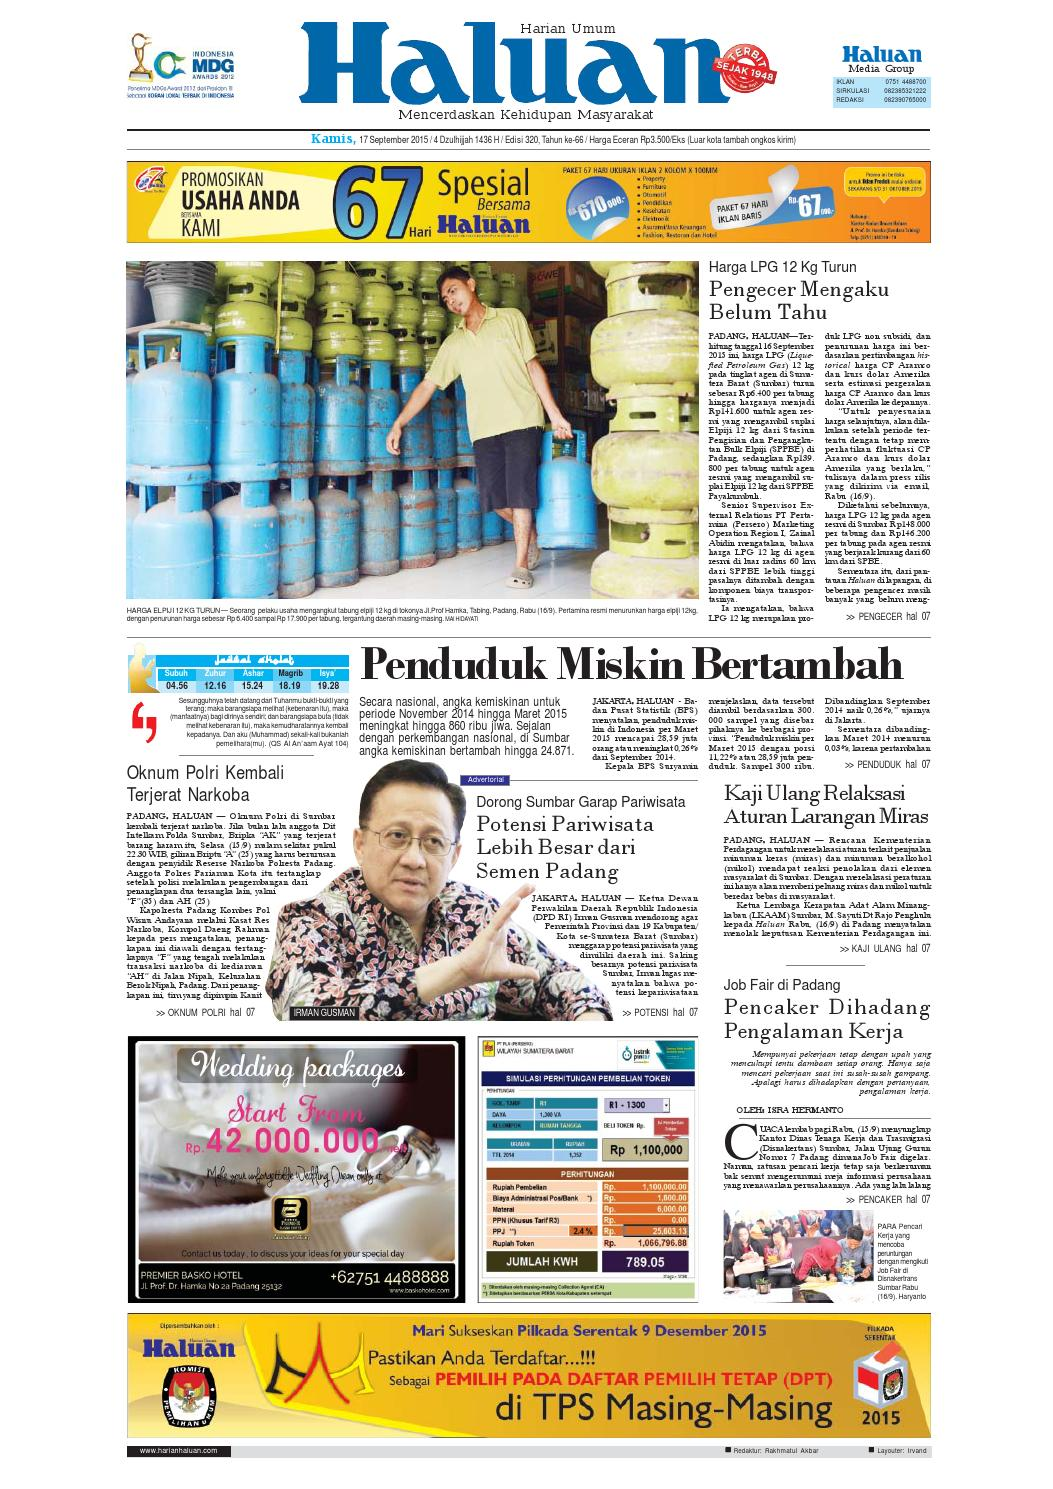 Haluan 17 September 2015 By Harian Issuu Produk Ukm Bumn Snowcake Double Choco